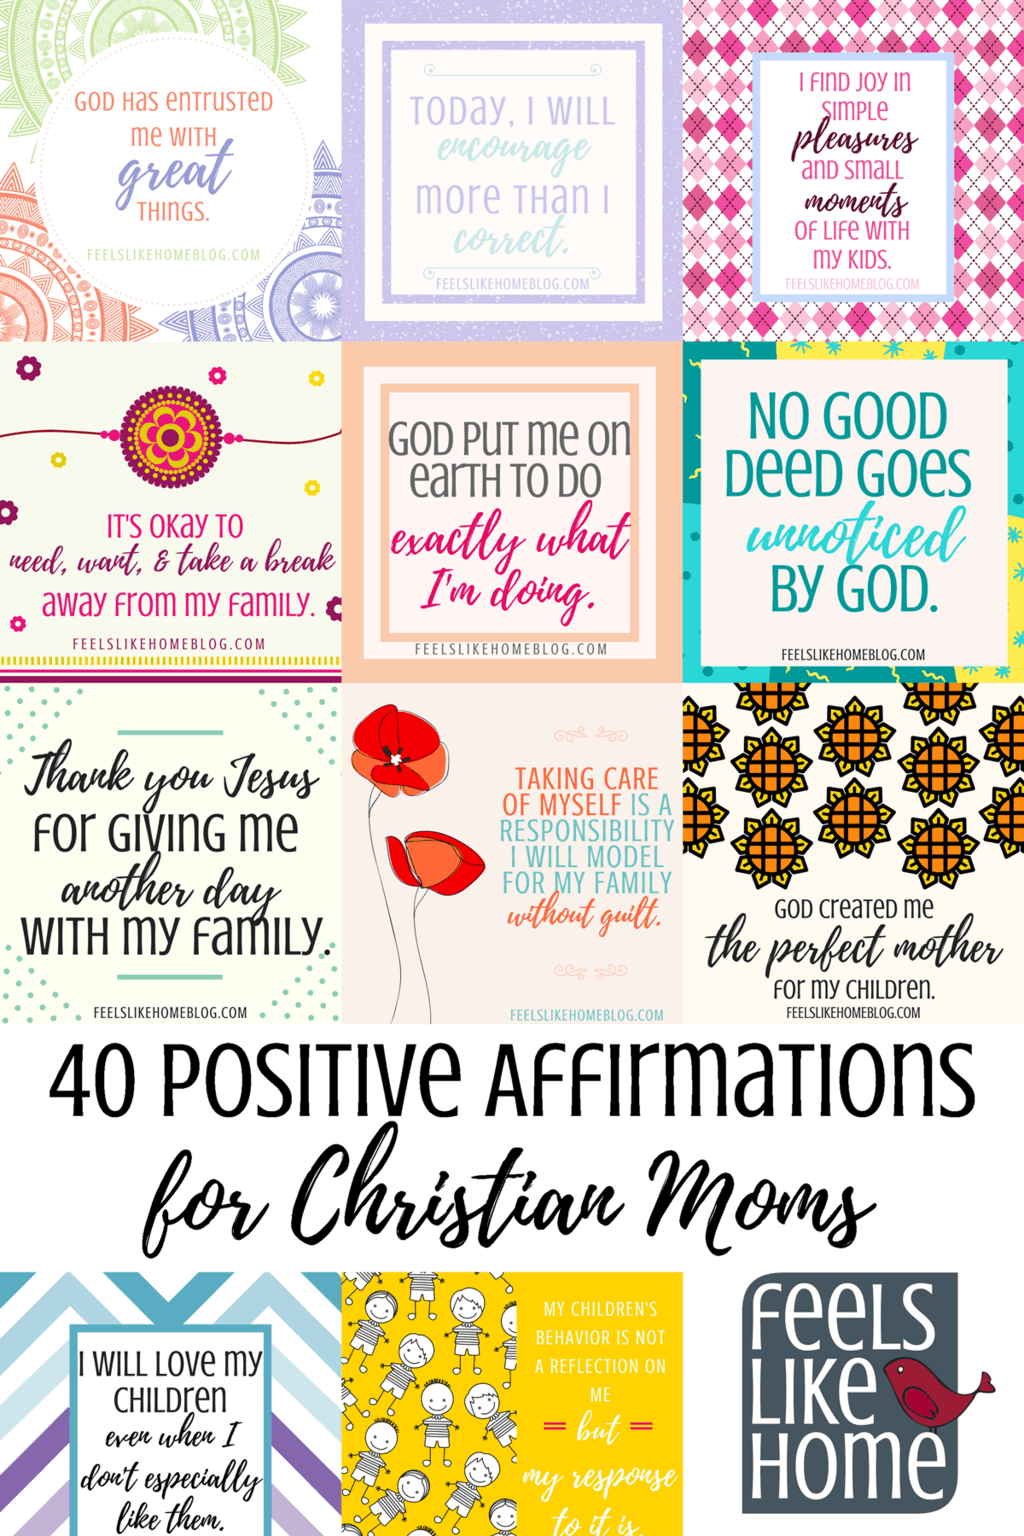 picture about Affirmation Cards Printable called 40 Absolutely sure Affirmations for Christian Mothers (with printable